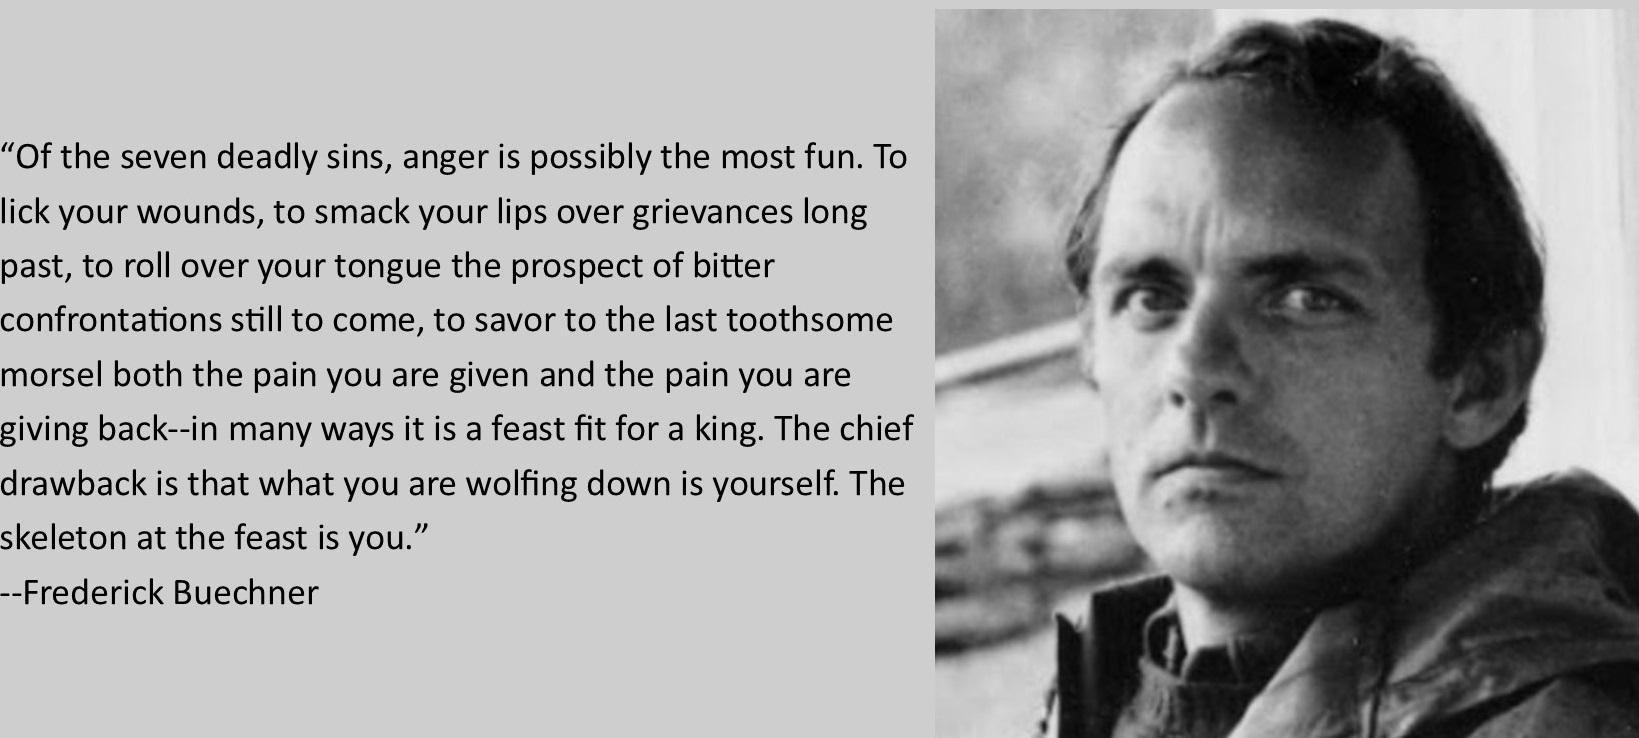 """""""Of the Seven Deadly Sins, anger is possibly the most fun."""" Frederick Buechner [1650 x 740]"""